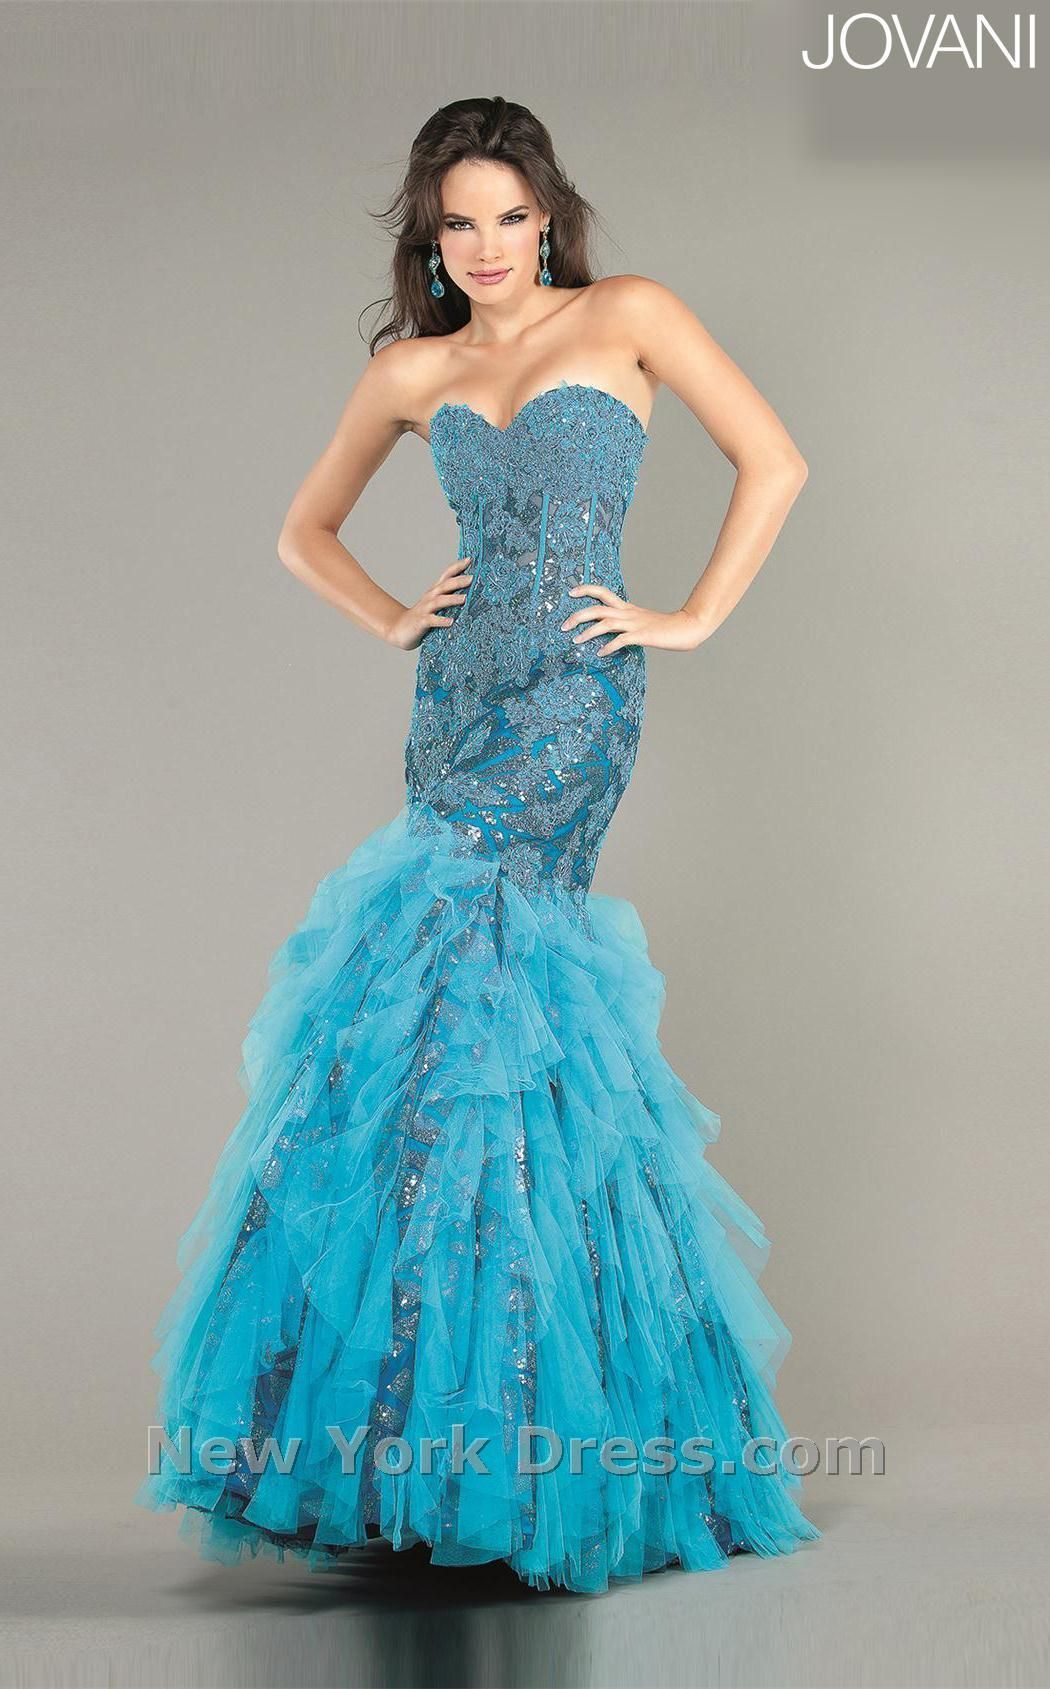 Jovani Dress 6513 | Discover more ideas about Jovani dresses, Prom ...